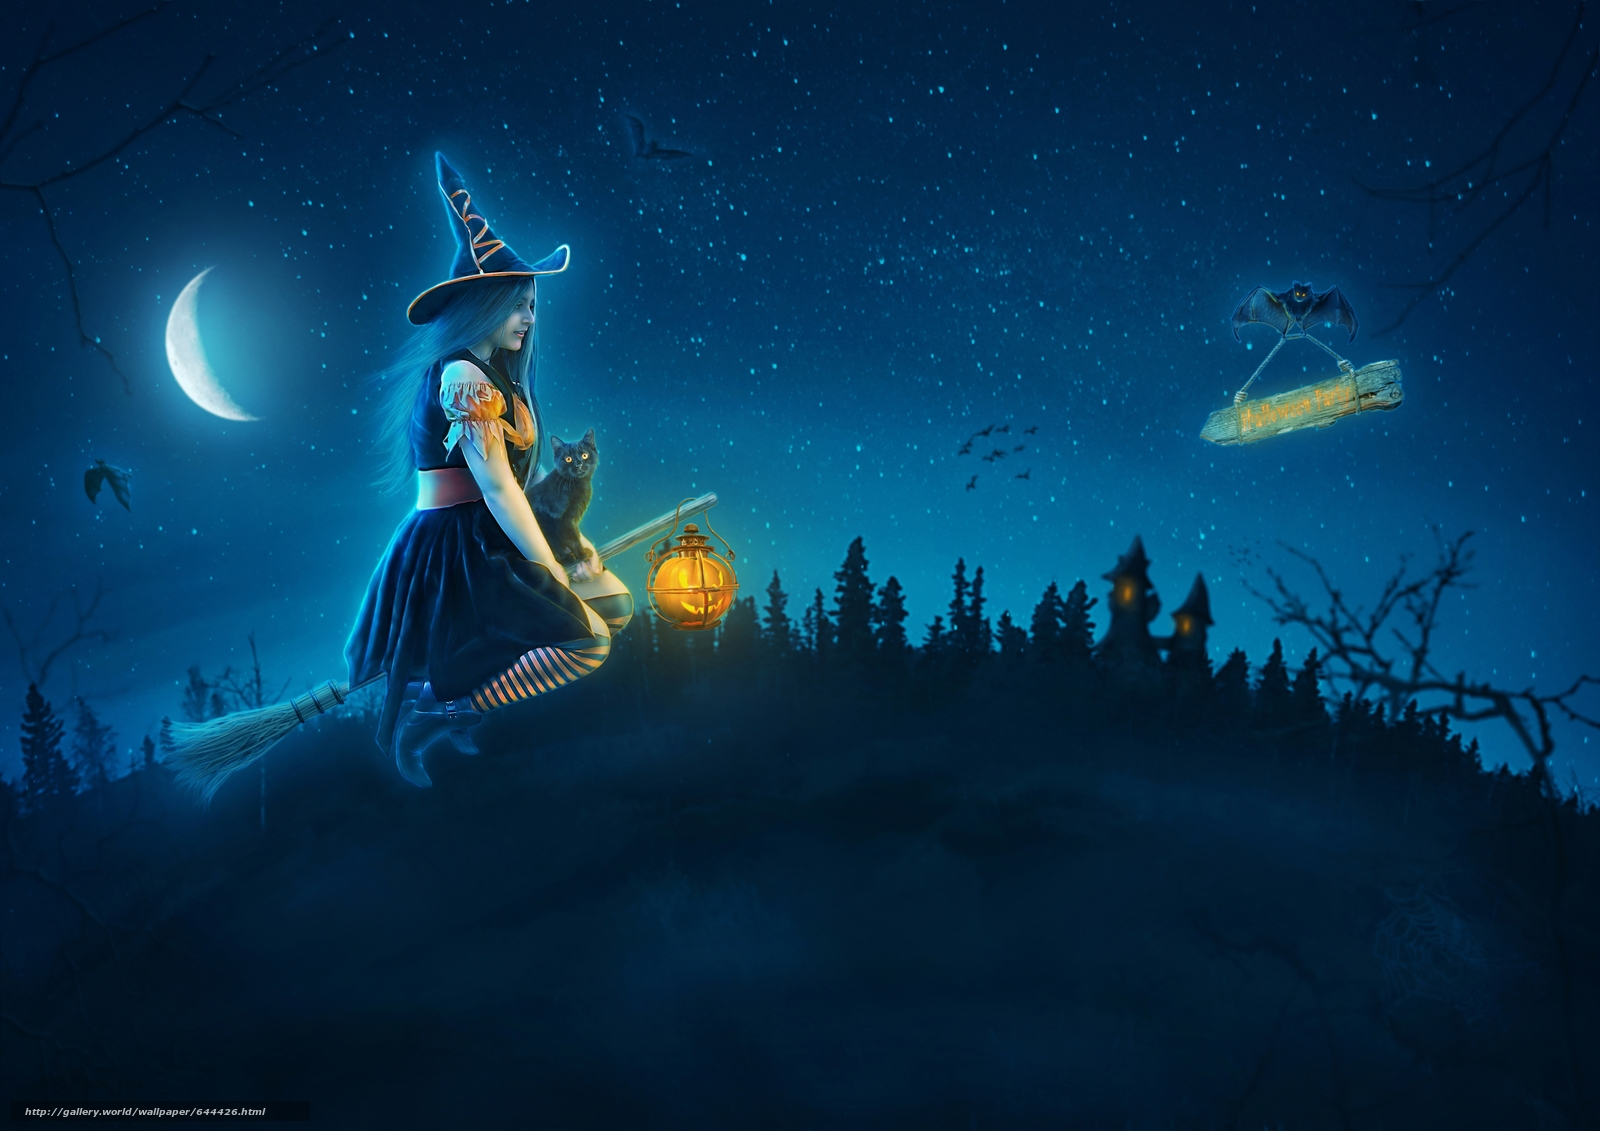 Download wallpaper night,  moon,  vedmachka on a broomstick,  kitten free desktop wallpaper in the resolution 5184x3666 — picture №644426